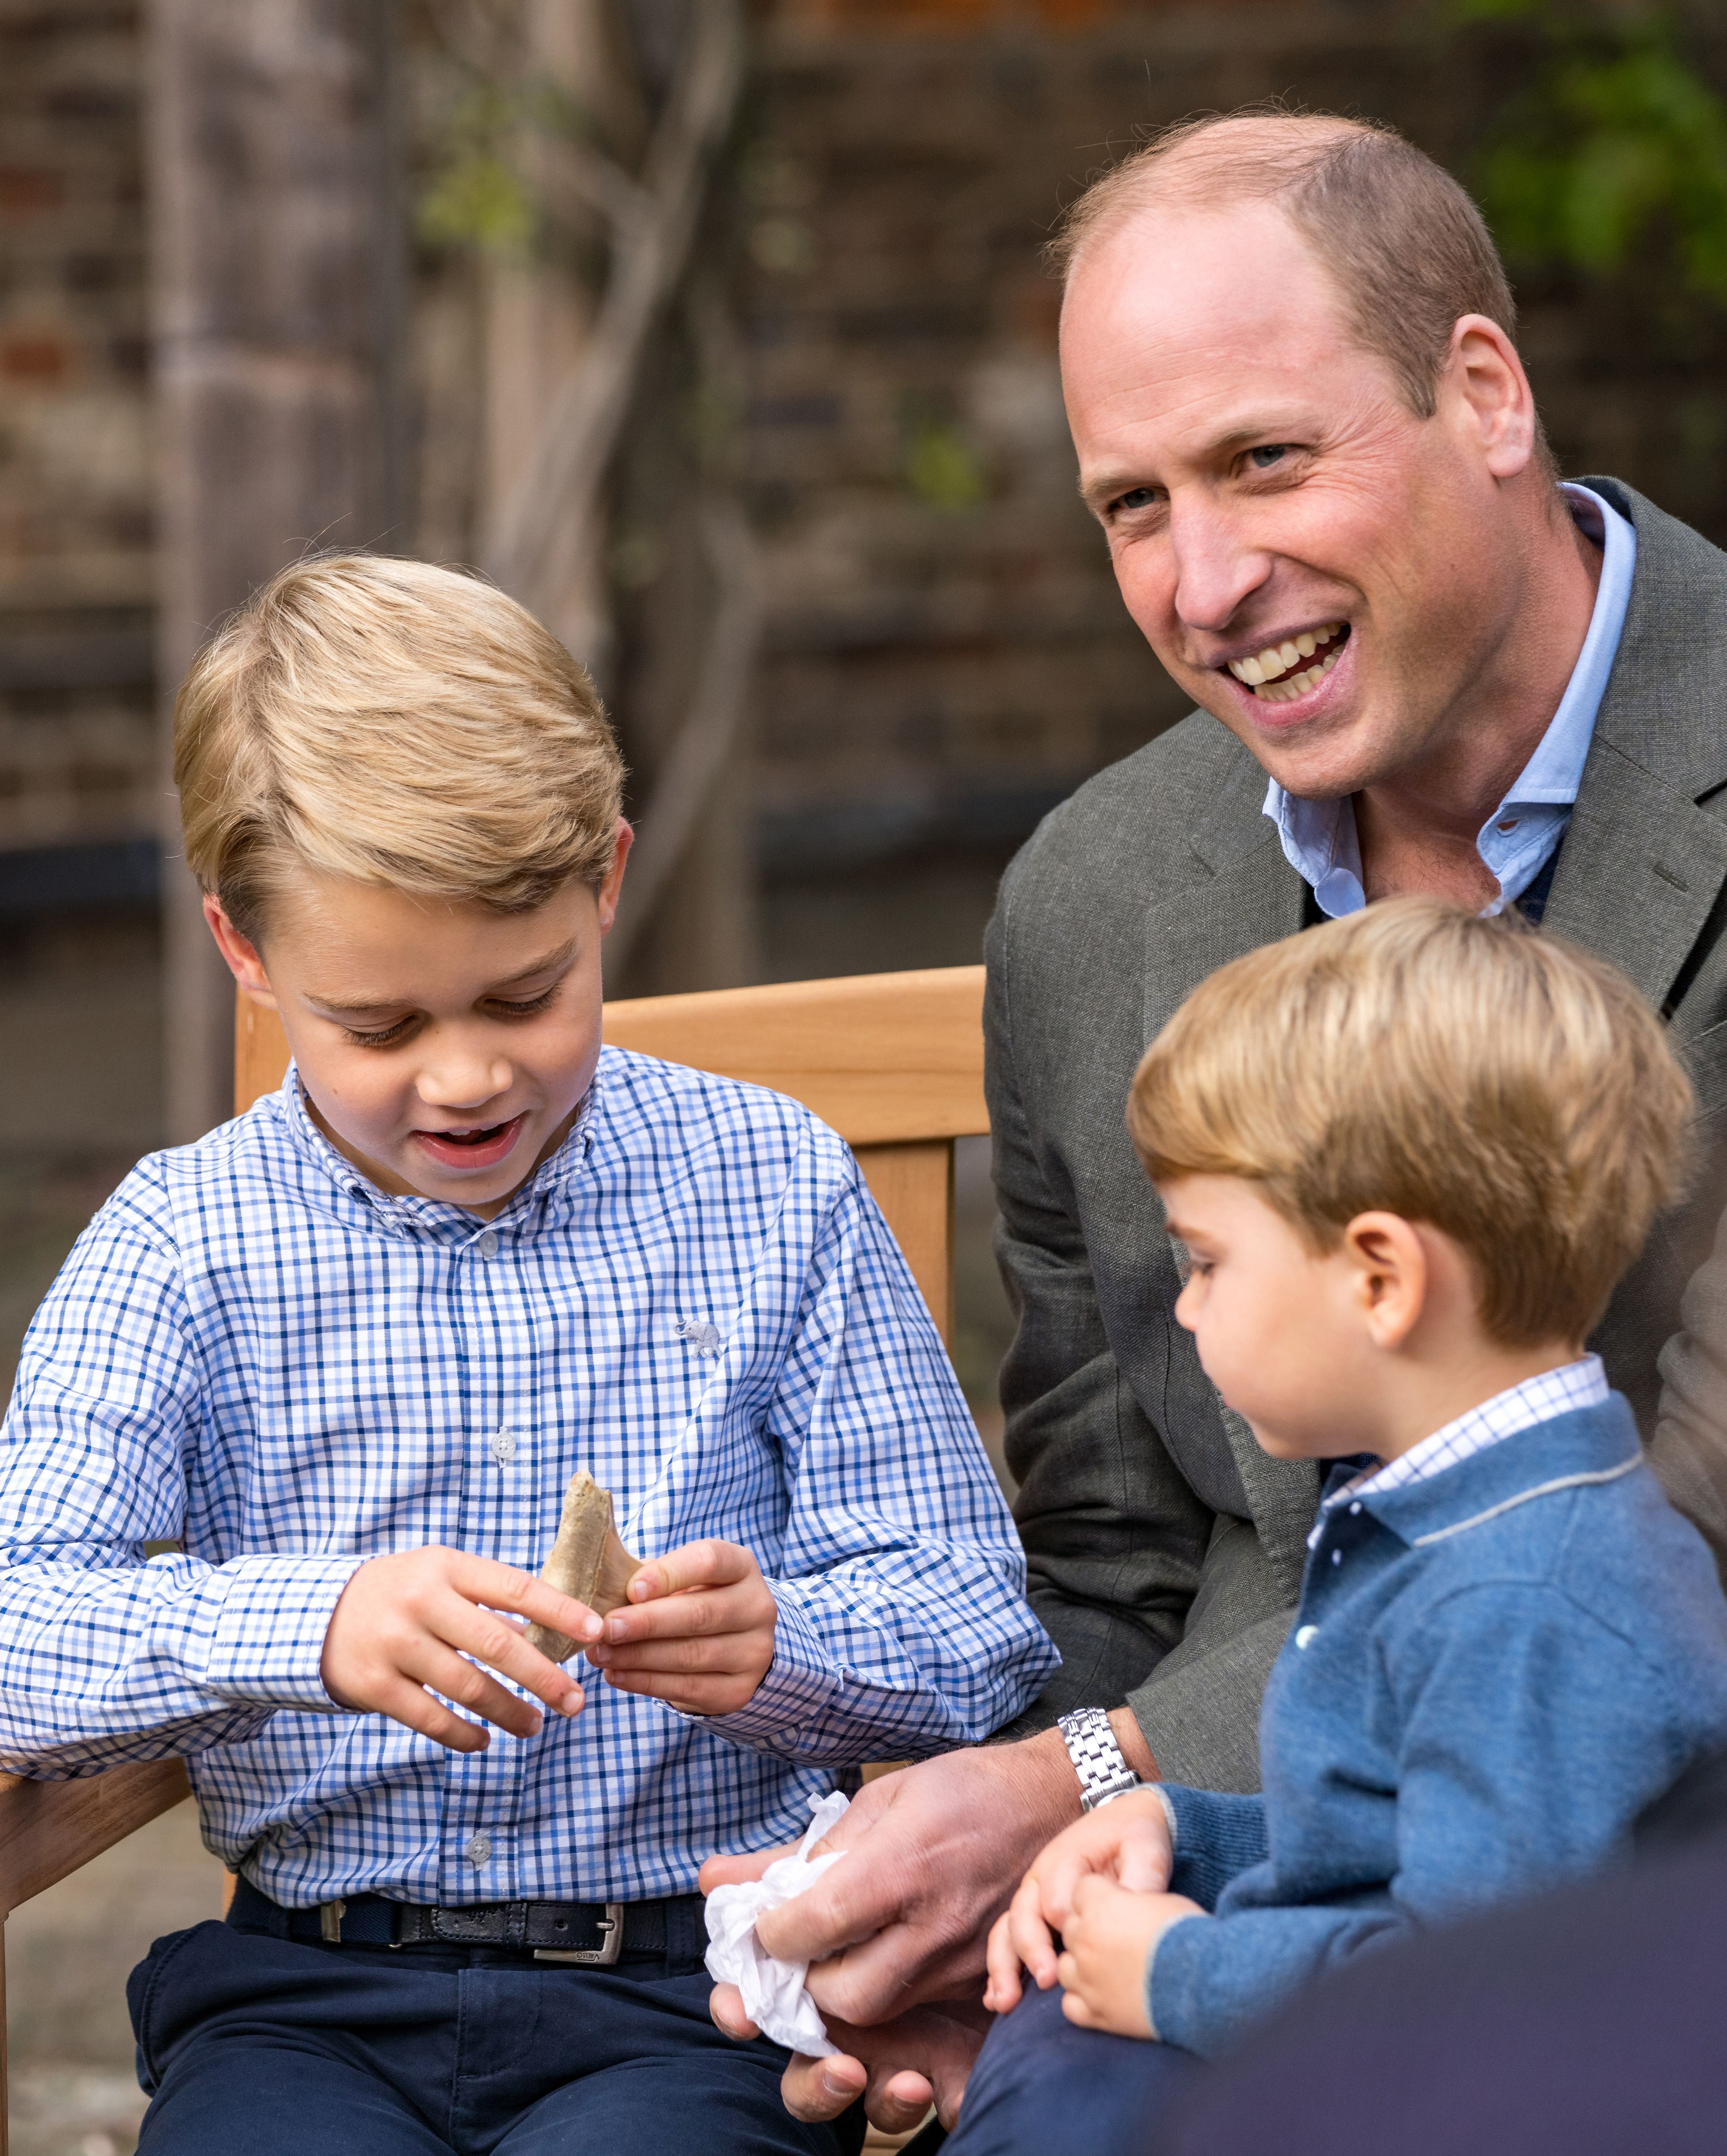 Prince George, Prince William, and Prince Louis in the gardens of Kensington Palace on September 24, 2020, in London, England   Photo: Getty Images